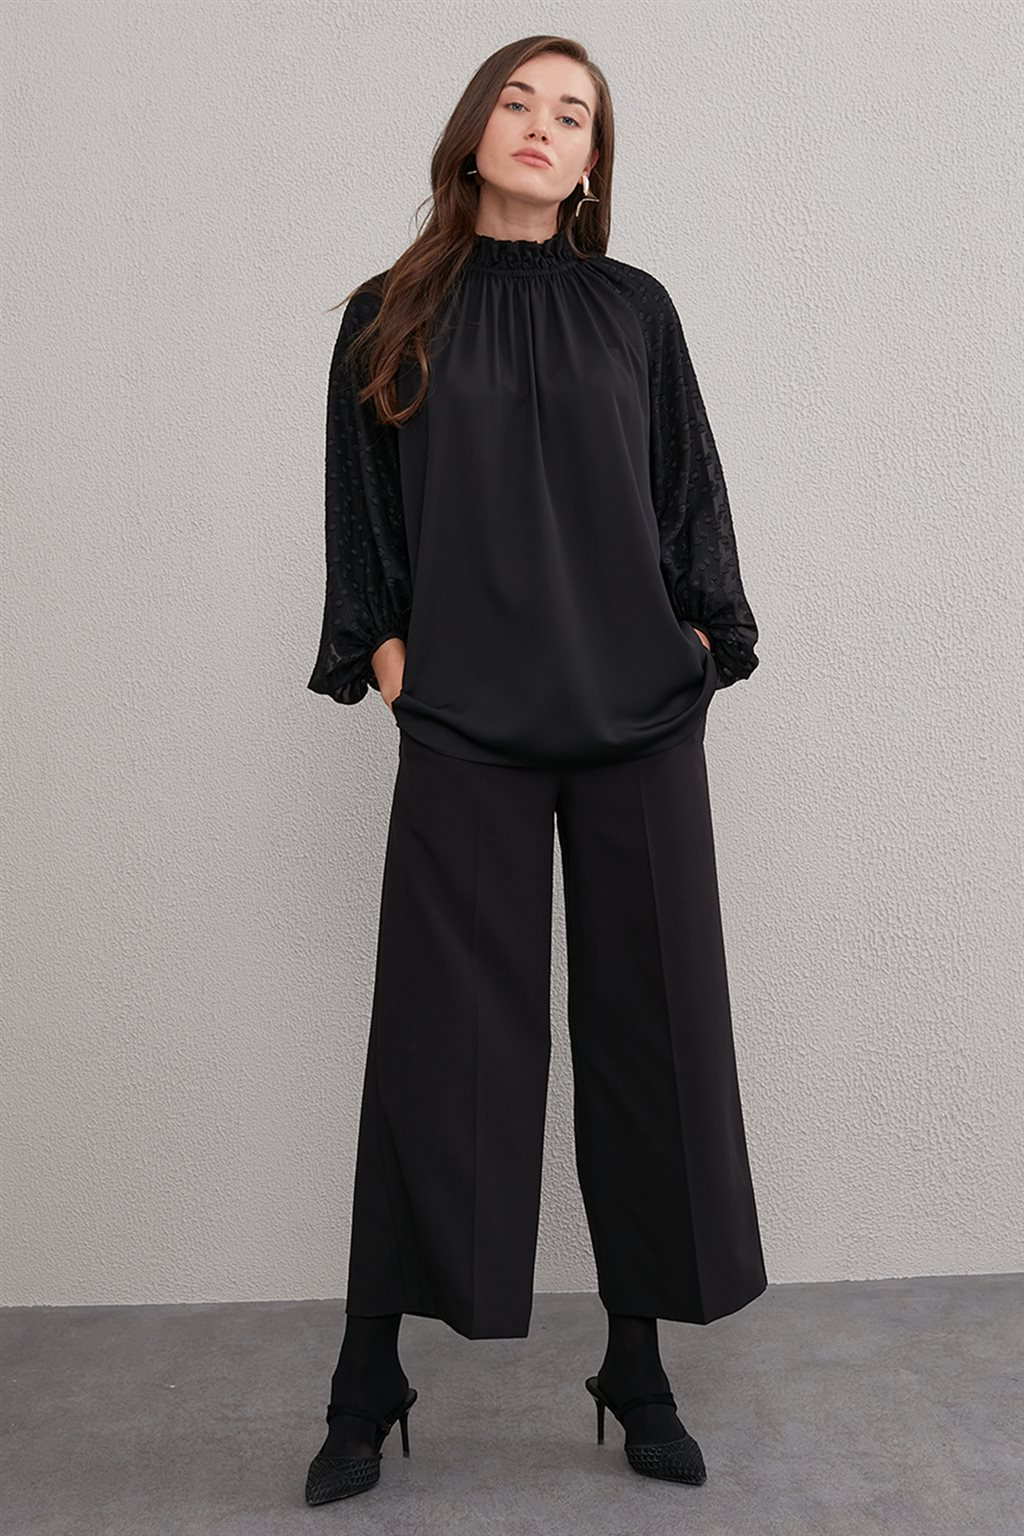 Balloon Sleeve Blouse With Frilly Collar A20 10028 Black